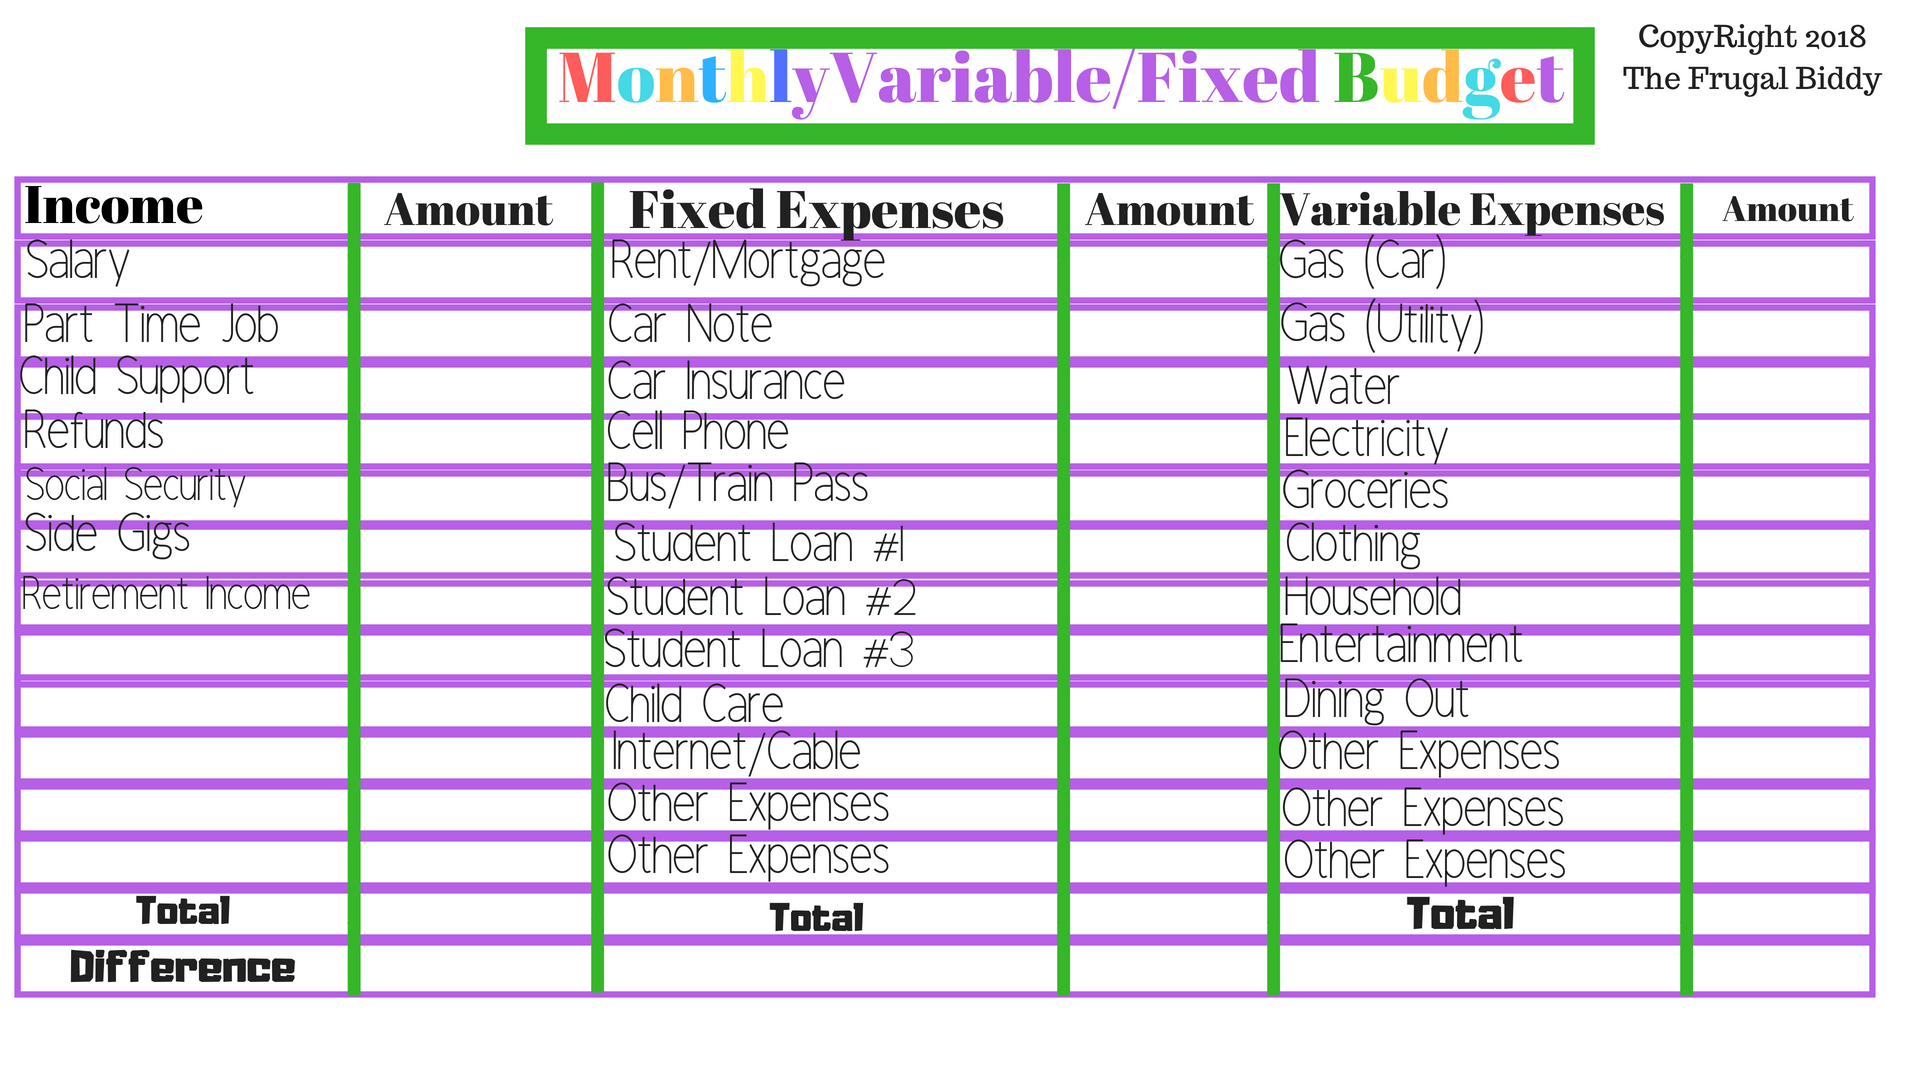 Monthly Variable Fixed Budget Worksheet